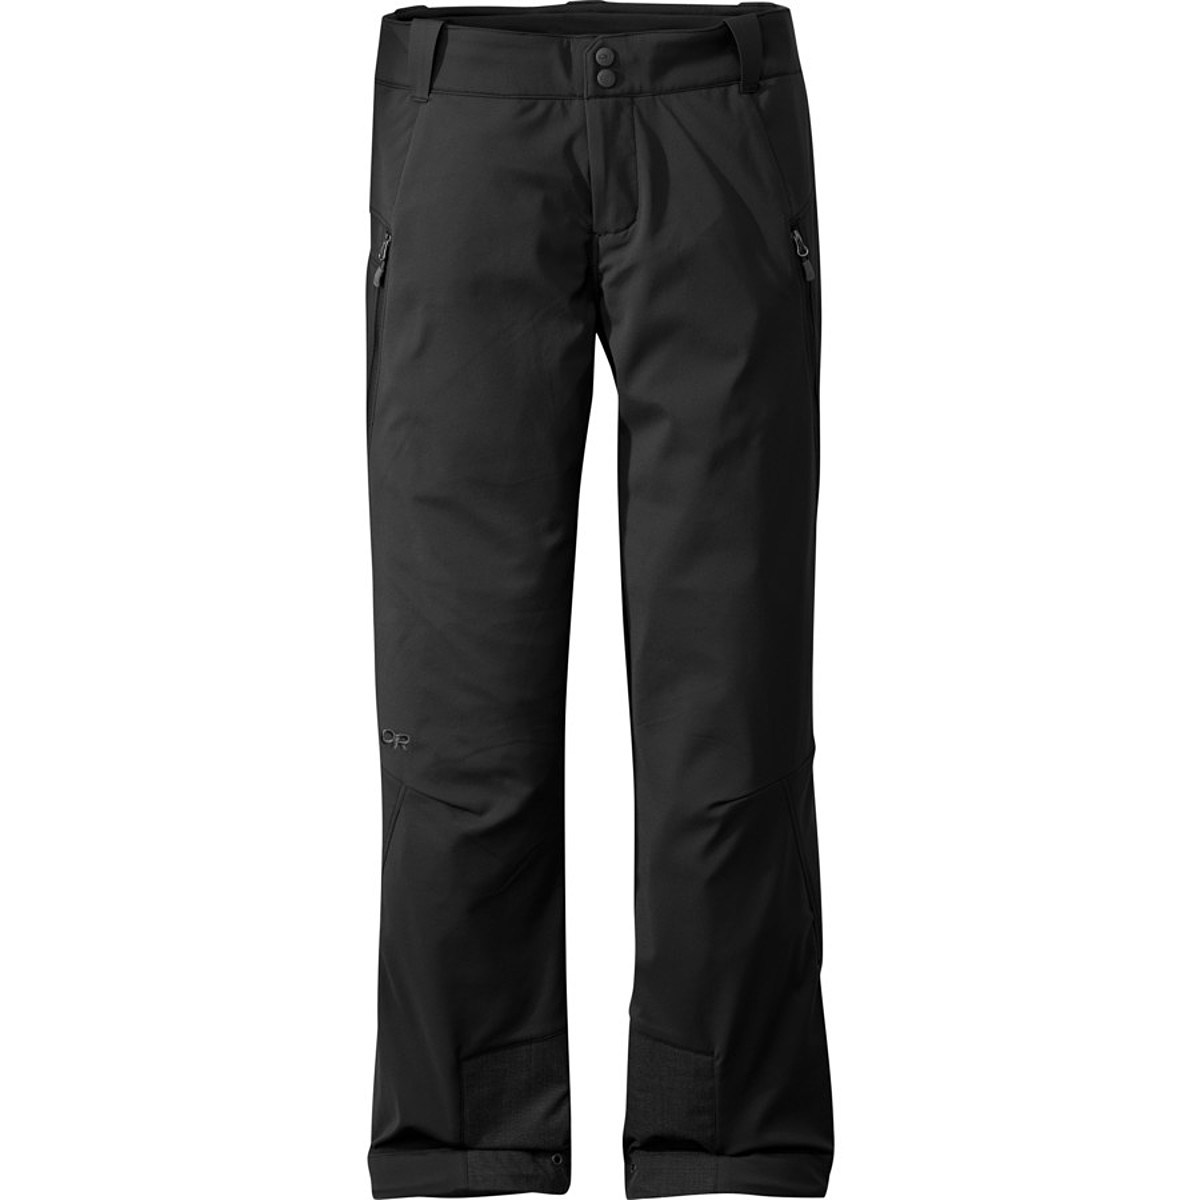 Outdoor Research Conviction Pants